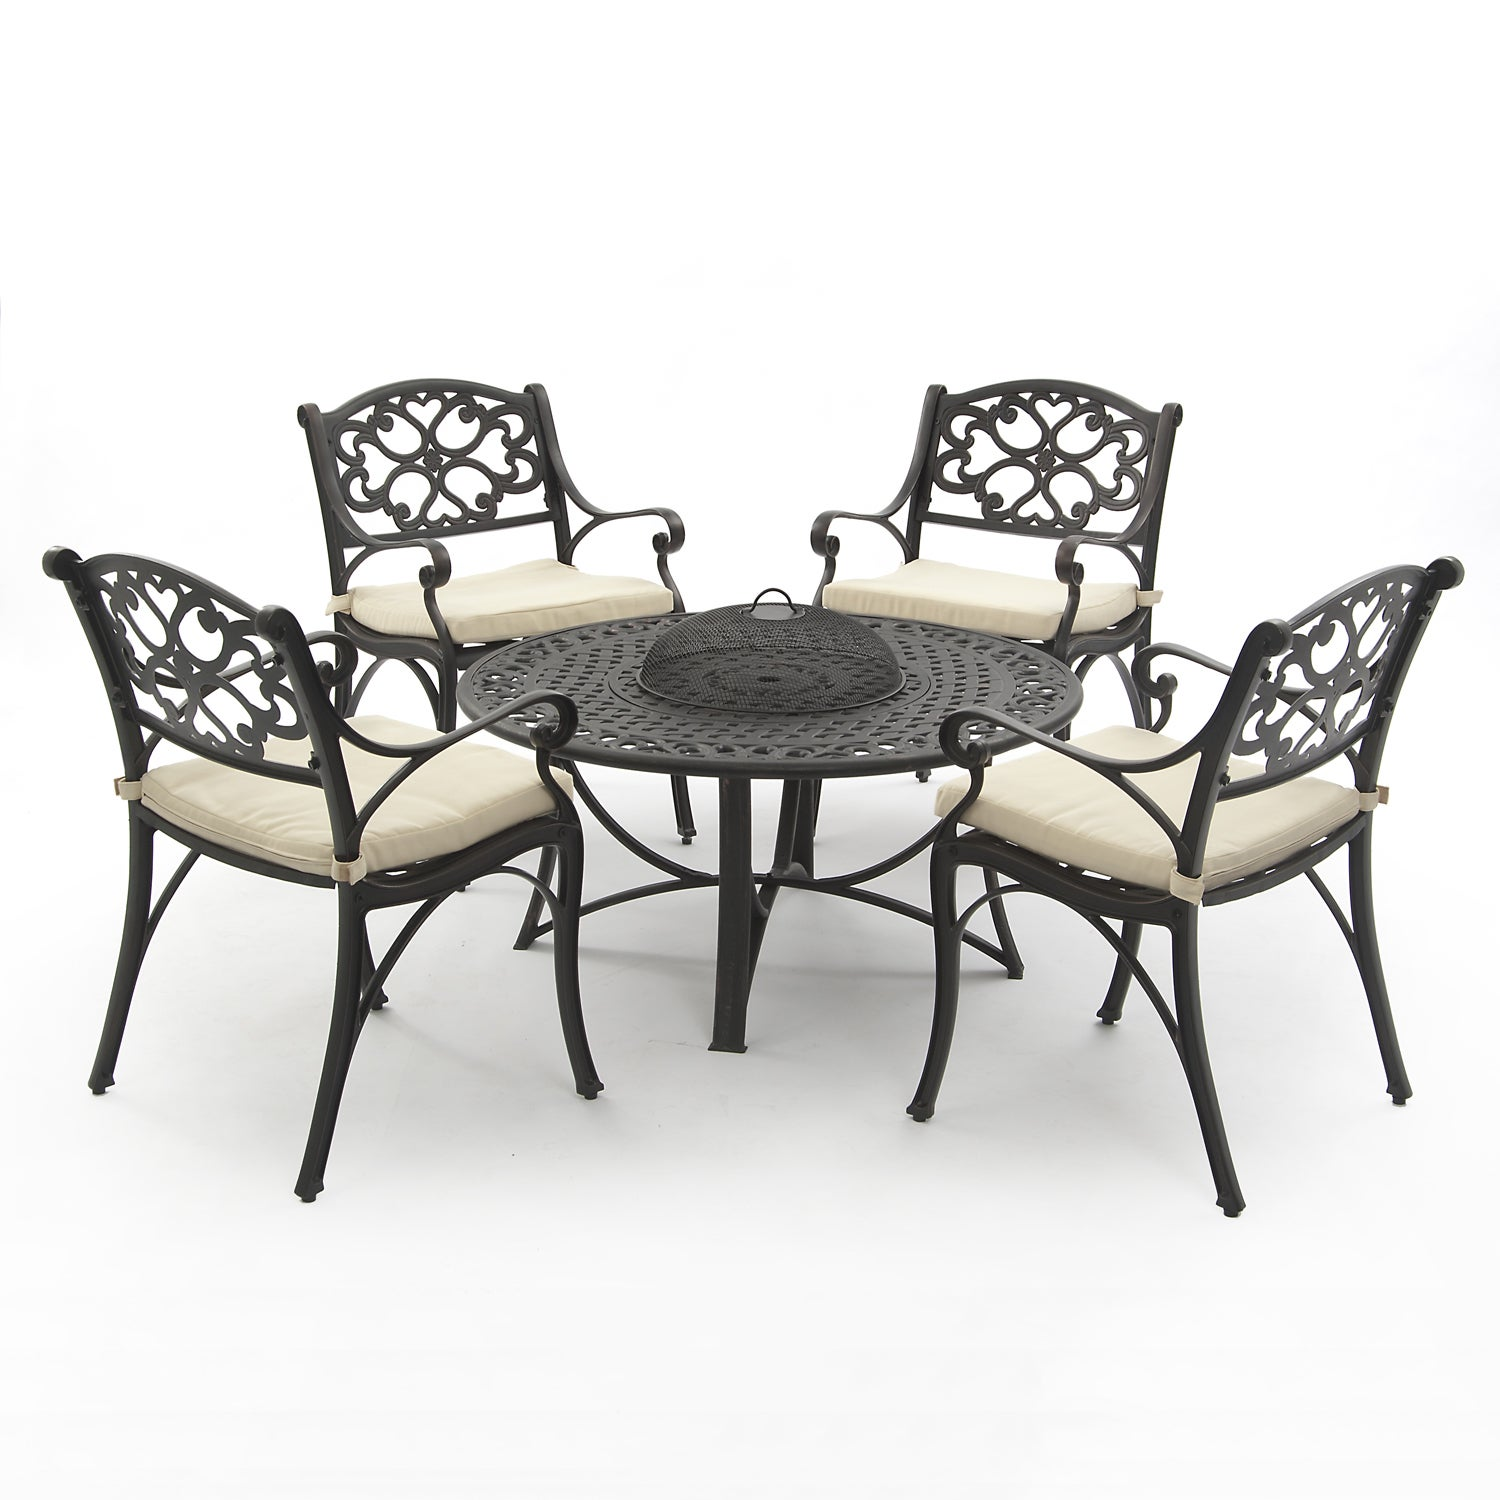 Oregon Aluminium Firepit Collection(1 table, 4 arm chairs...